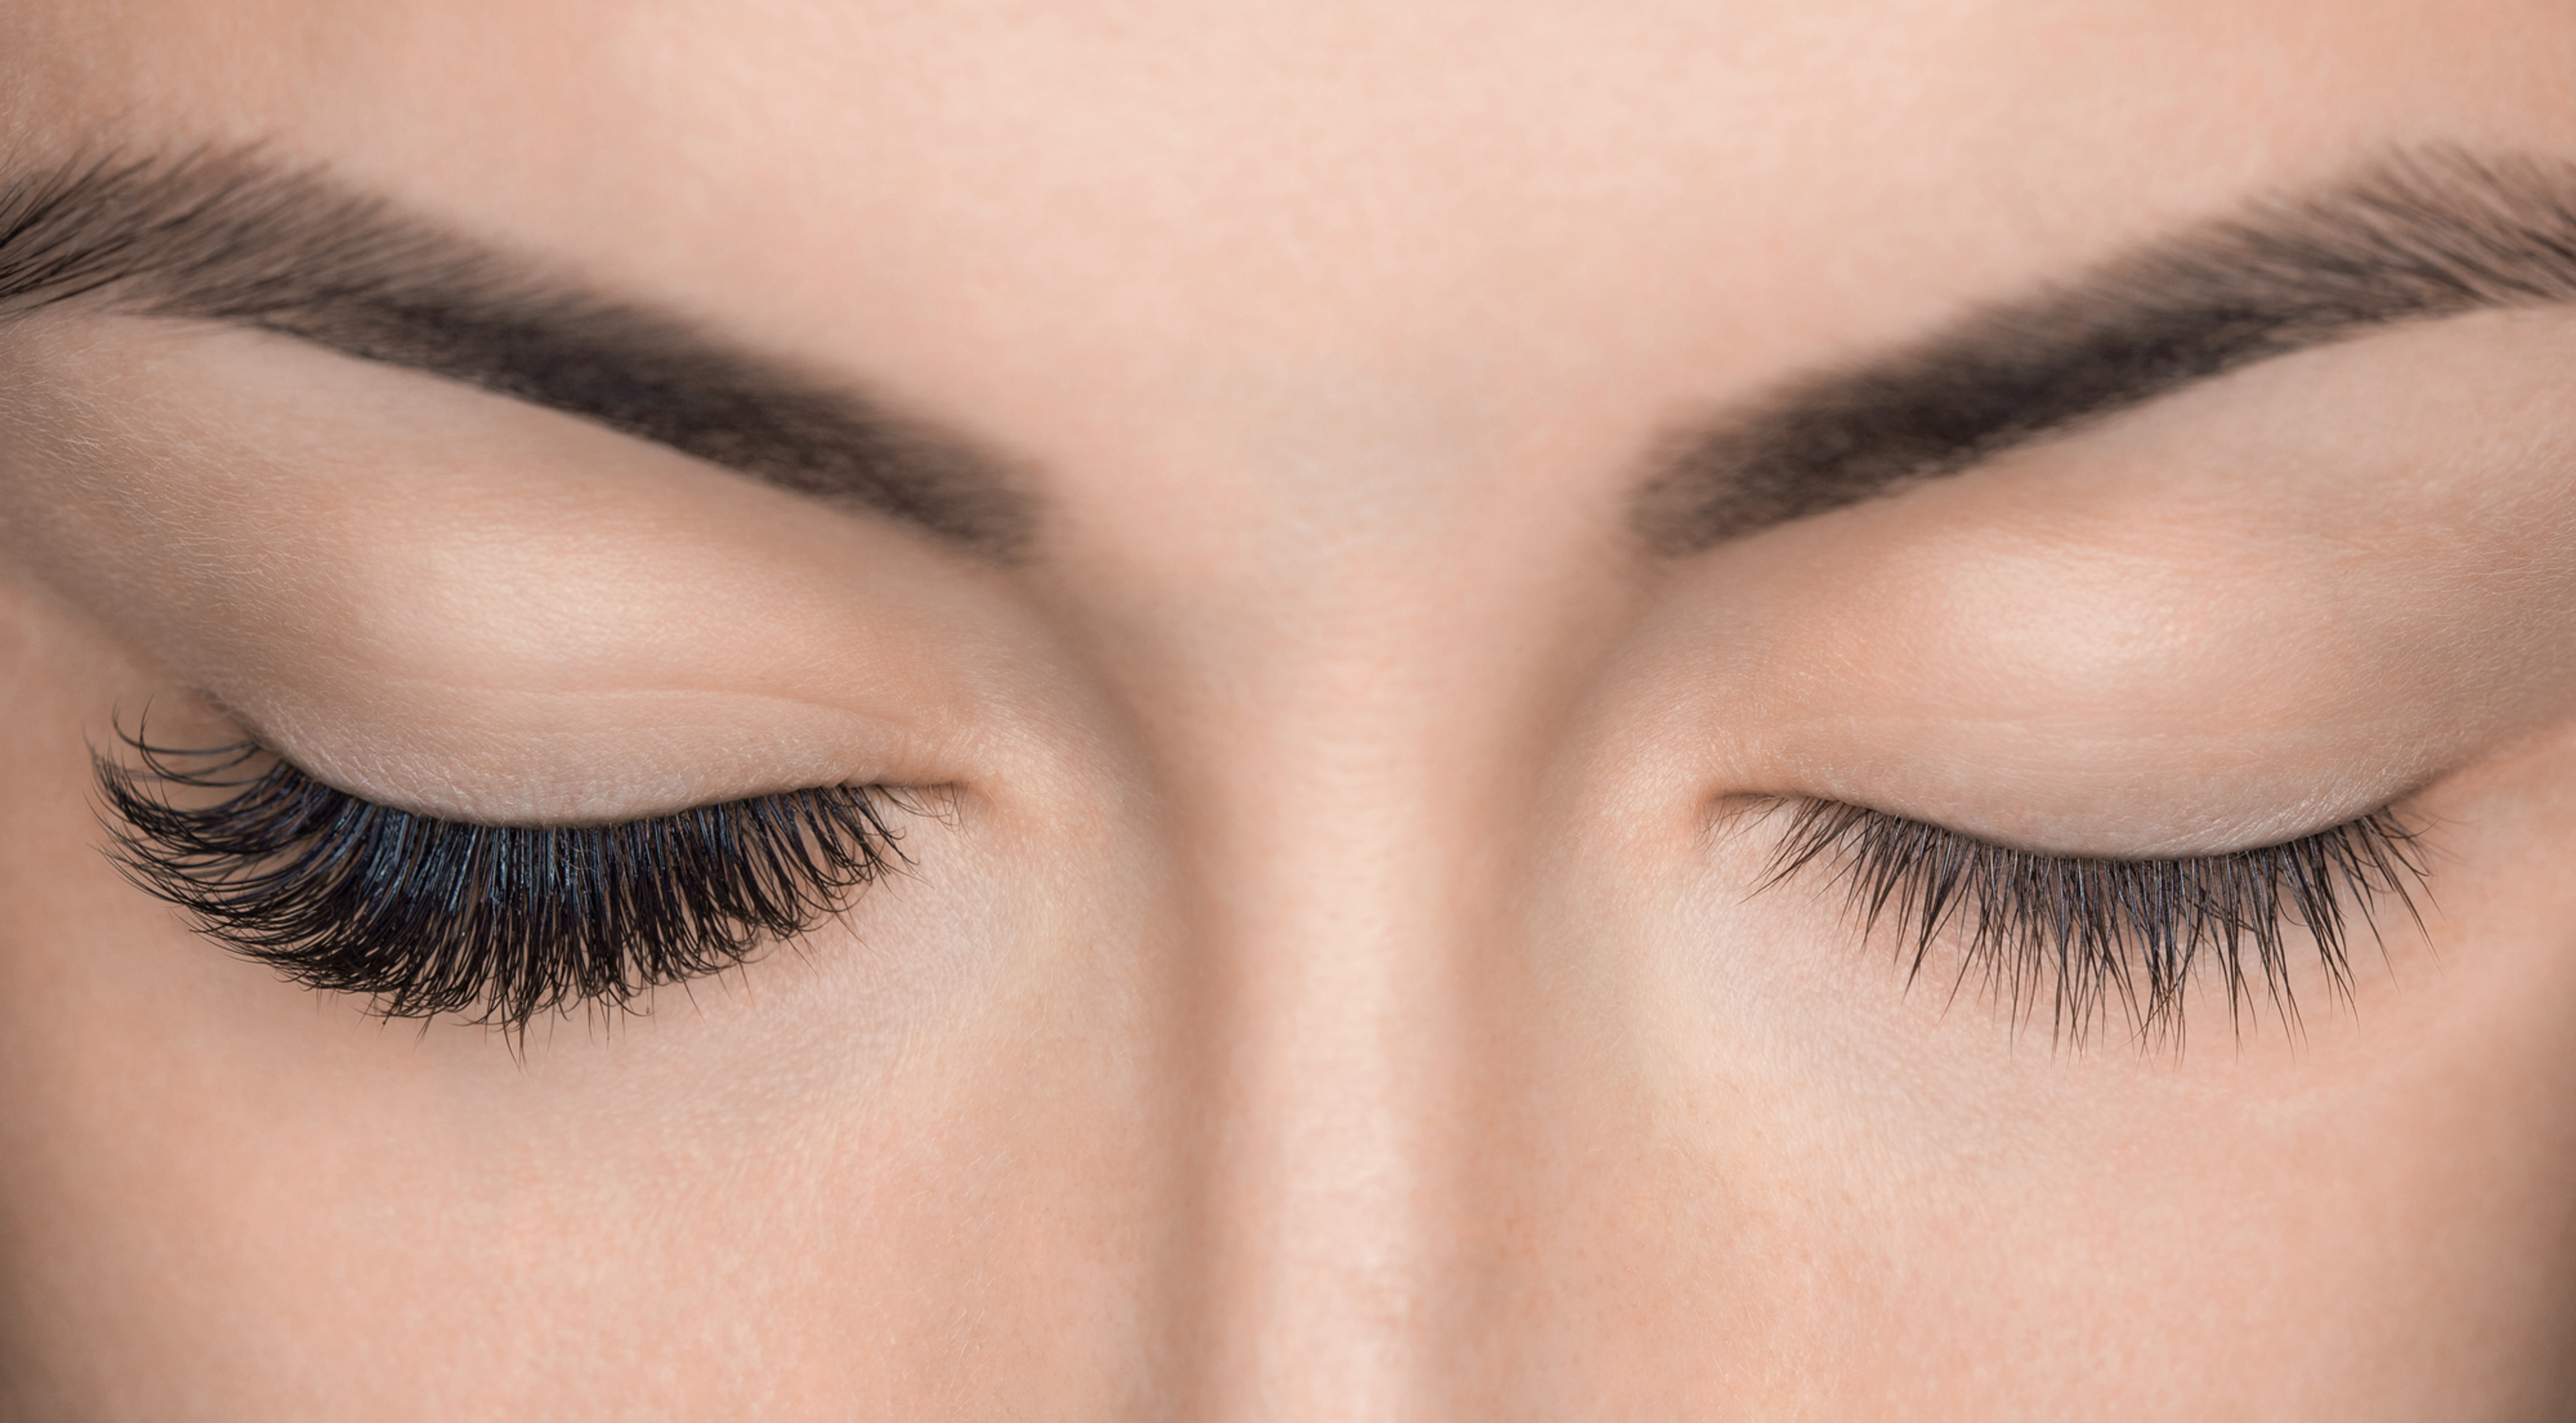 Flare-Cluster Lashes